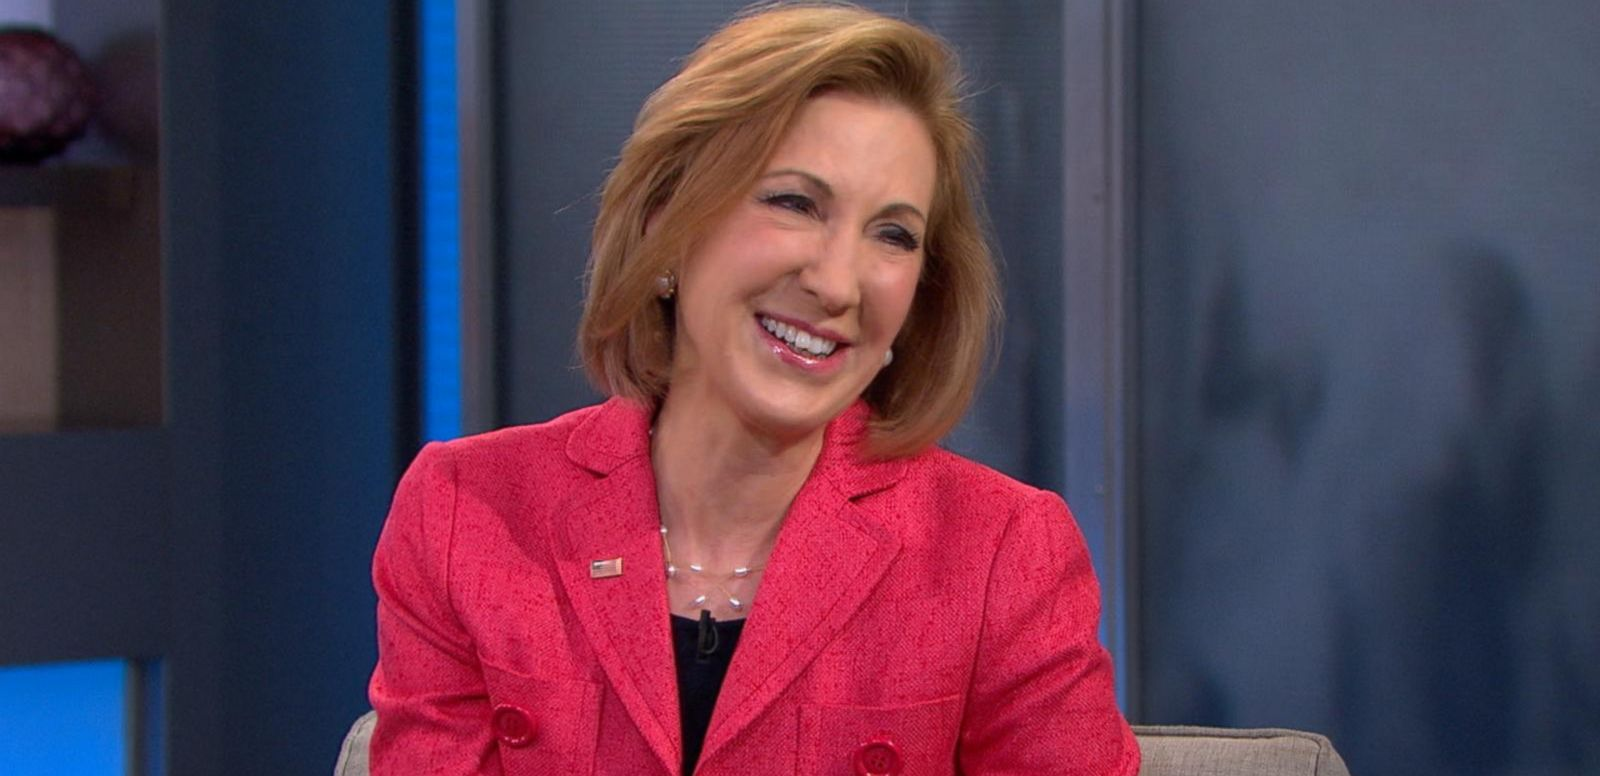 VIDEO: Presidential Candidate Carly Fiorina Releases New Book